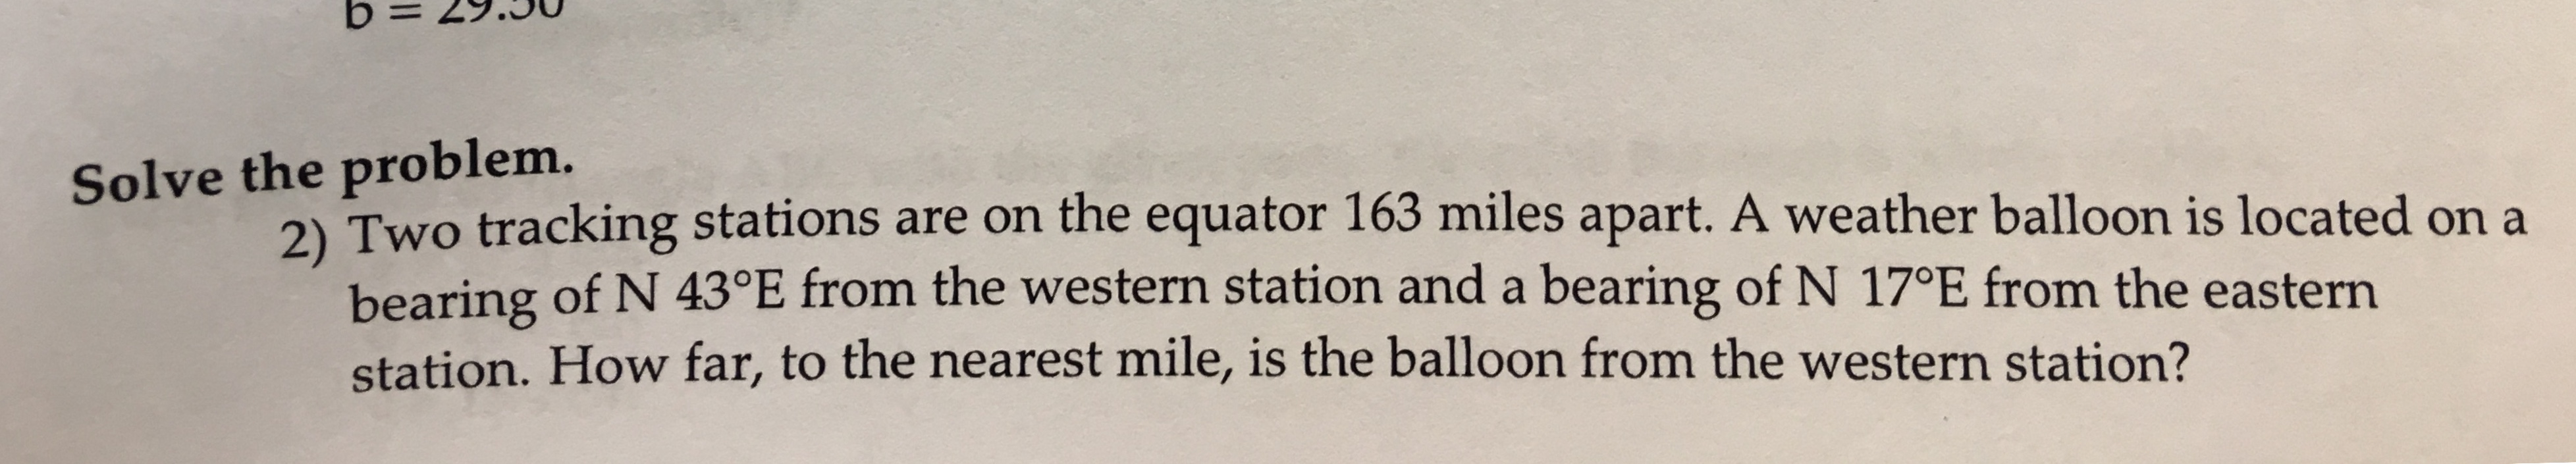 how long is the equator in miles